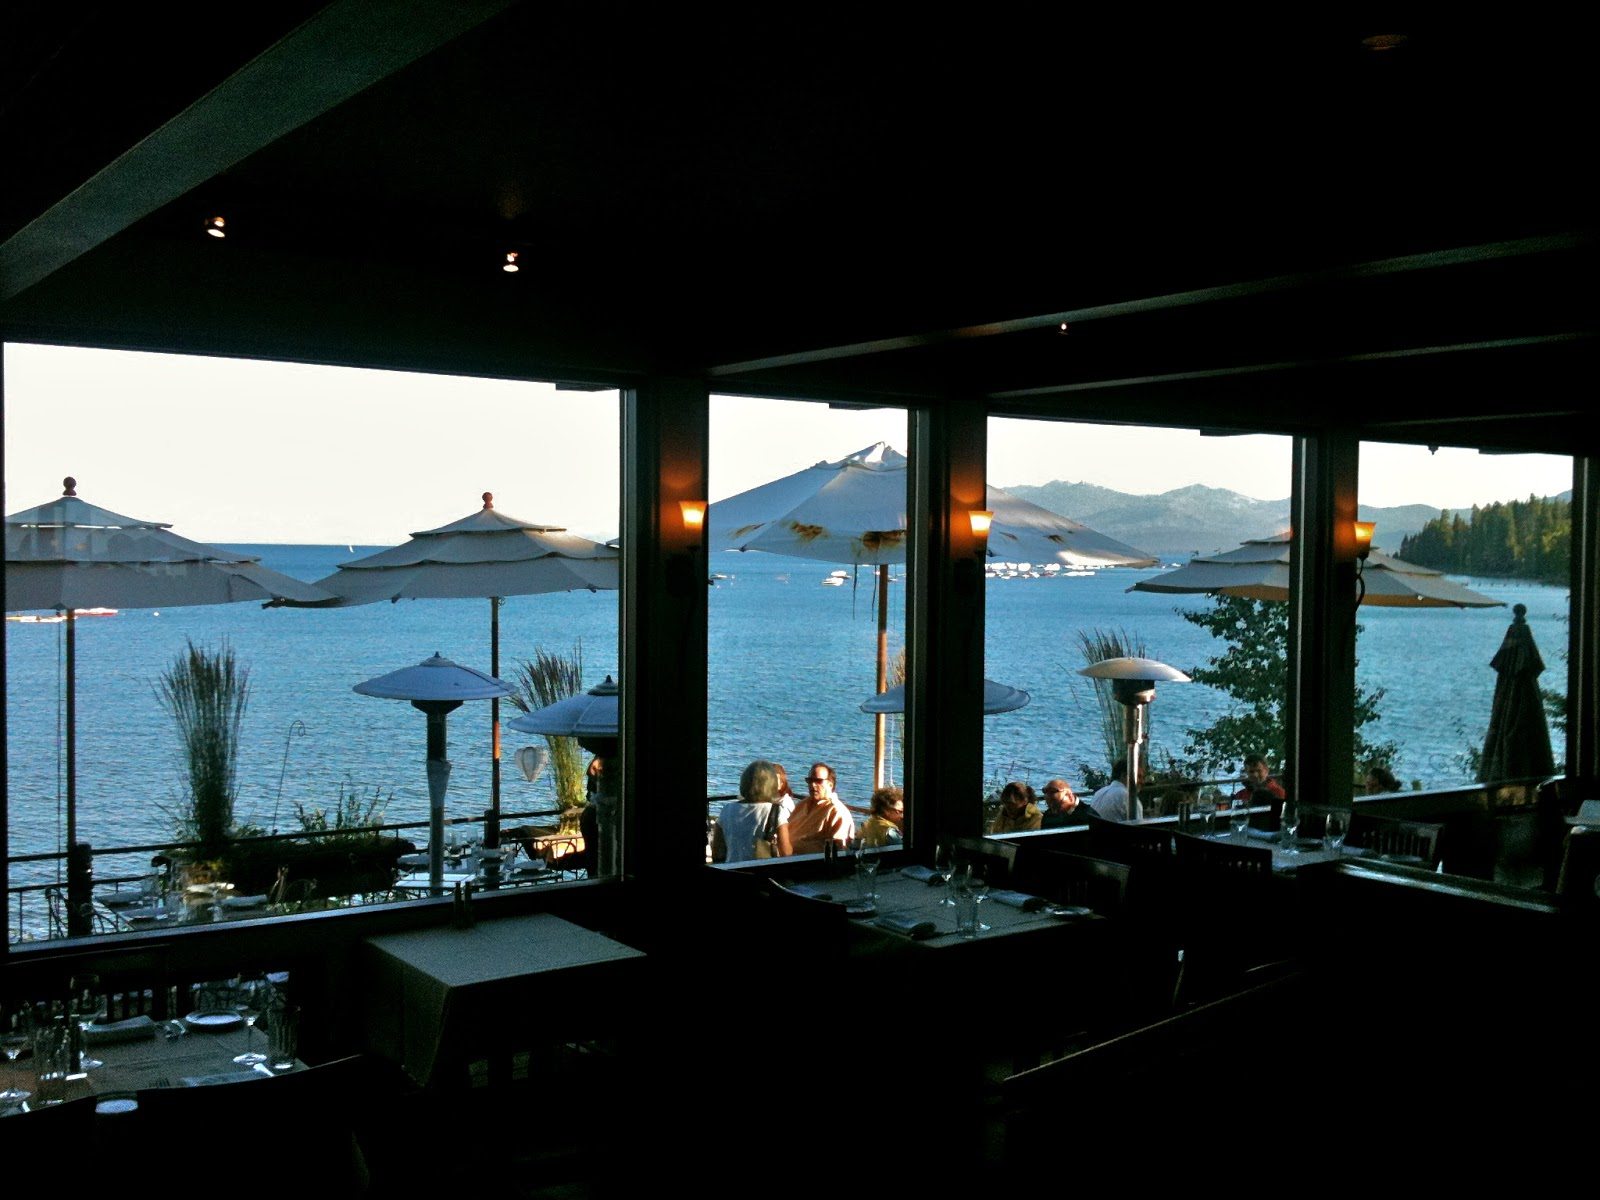 Simple Pleasures Dining Out In Lake Tahoe